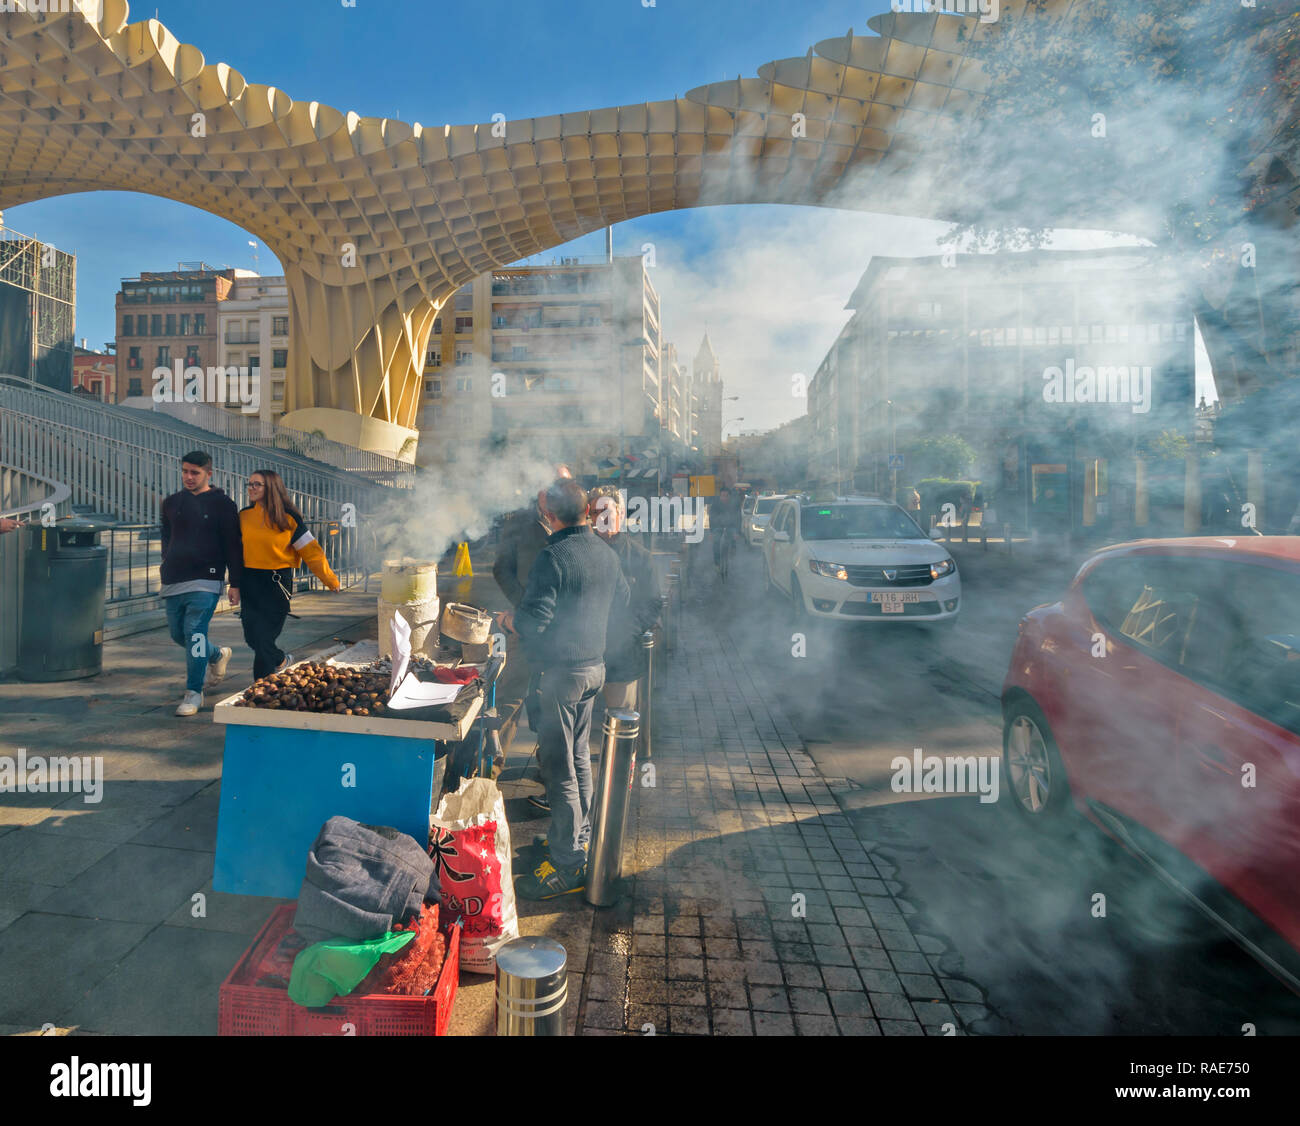 METROPOL PARASOL ENCARNACION SQUARE  SEVILLE SPAIN EARLY MORNING SMOKE FROM ROAST CHESTNUT SELLER AND PASSING TRAFFIC Stock Photo